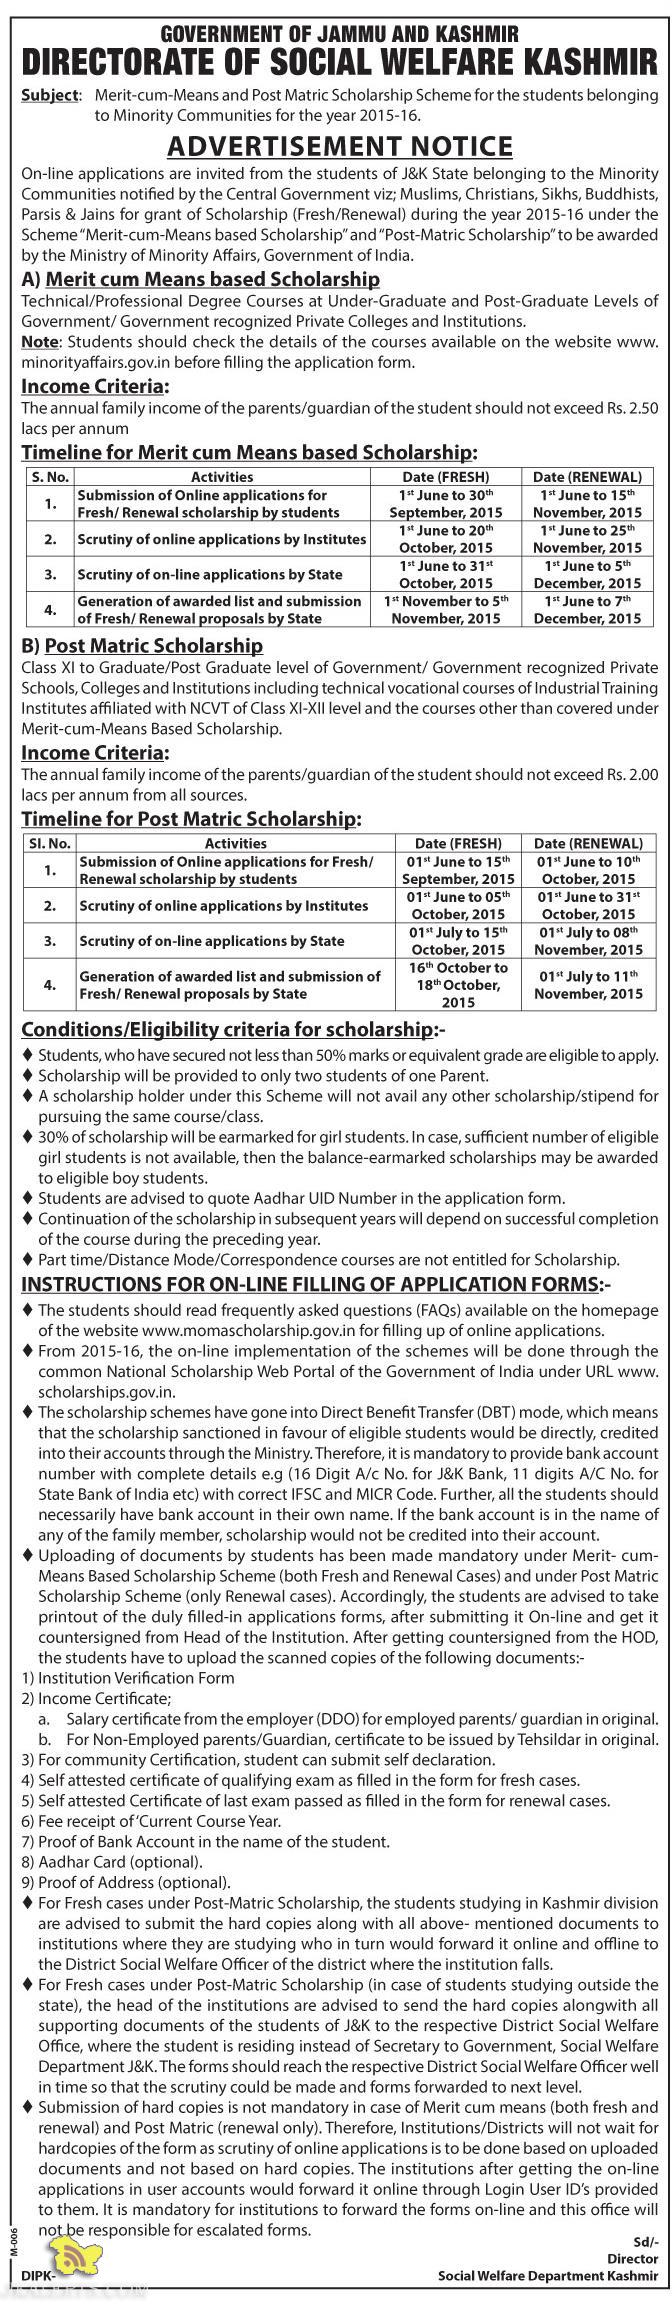 SOCIAL WELFARE Minority Merit-cum-Means and Post Matric Scholarship Scheme